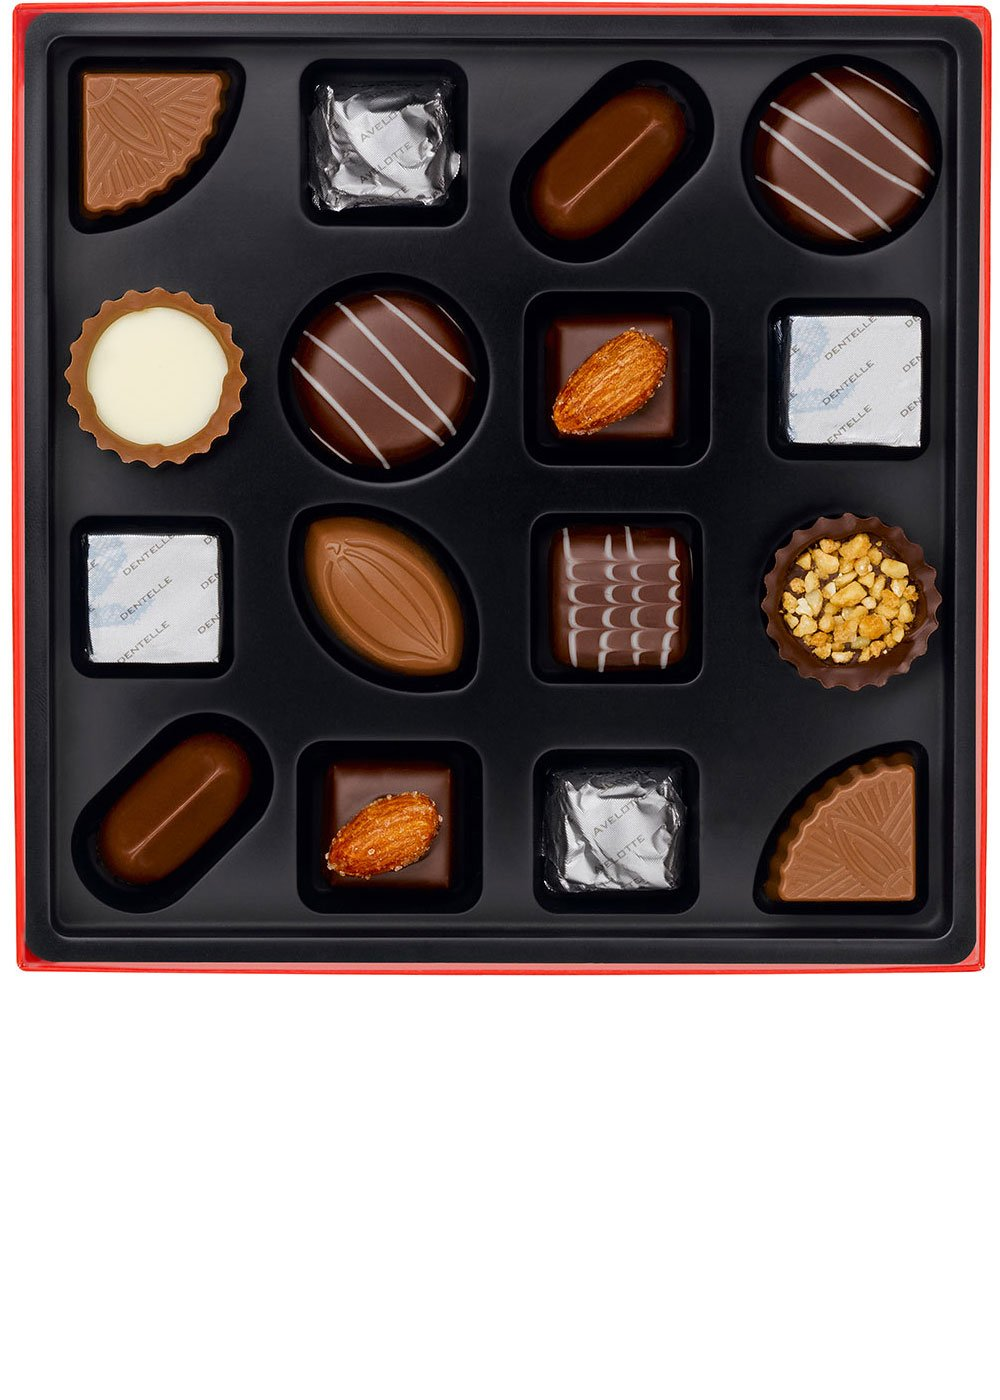 Amazon.com : CAILLER Chocolate Signature Selection, Small Box ...